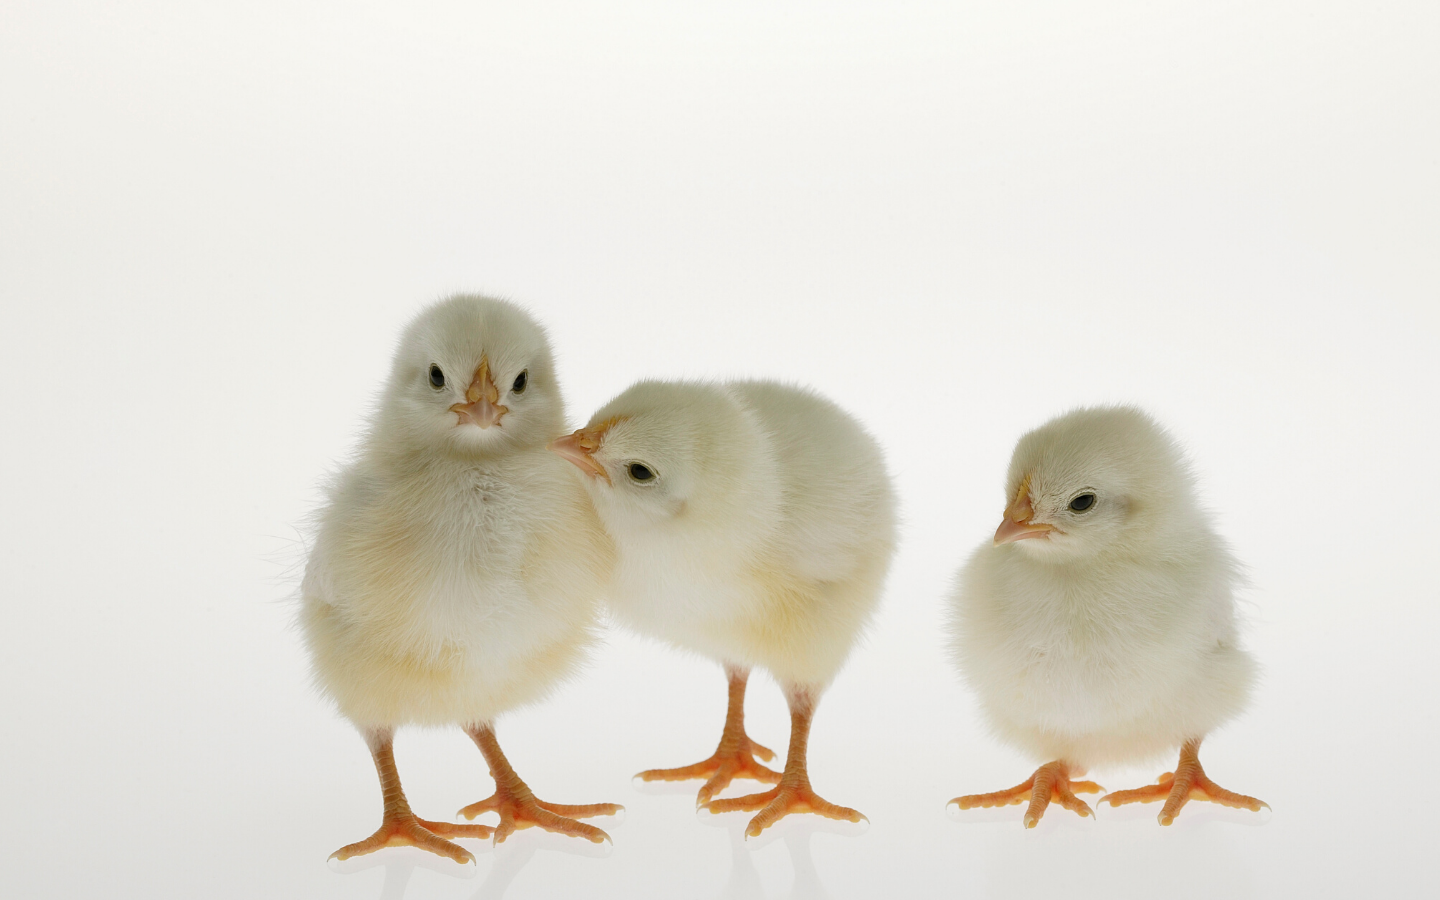 Low Protein Diet in broilers --- How low can we go?